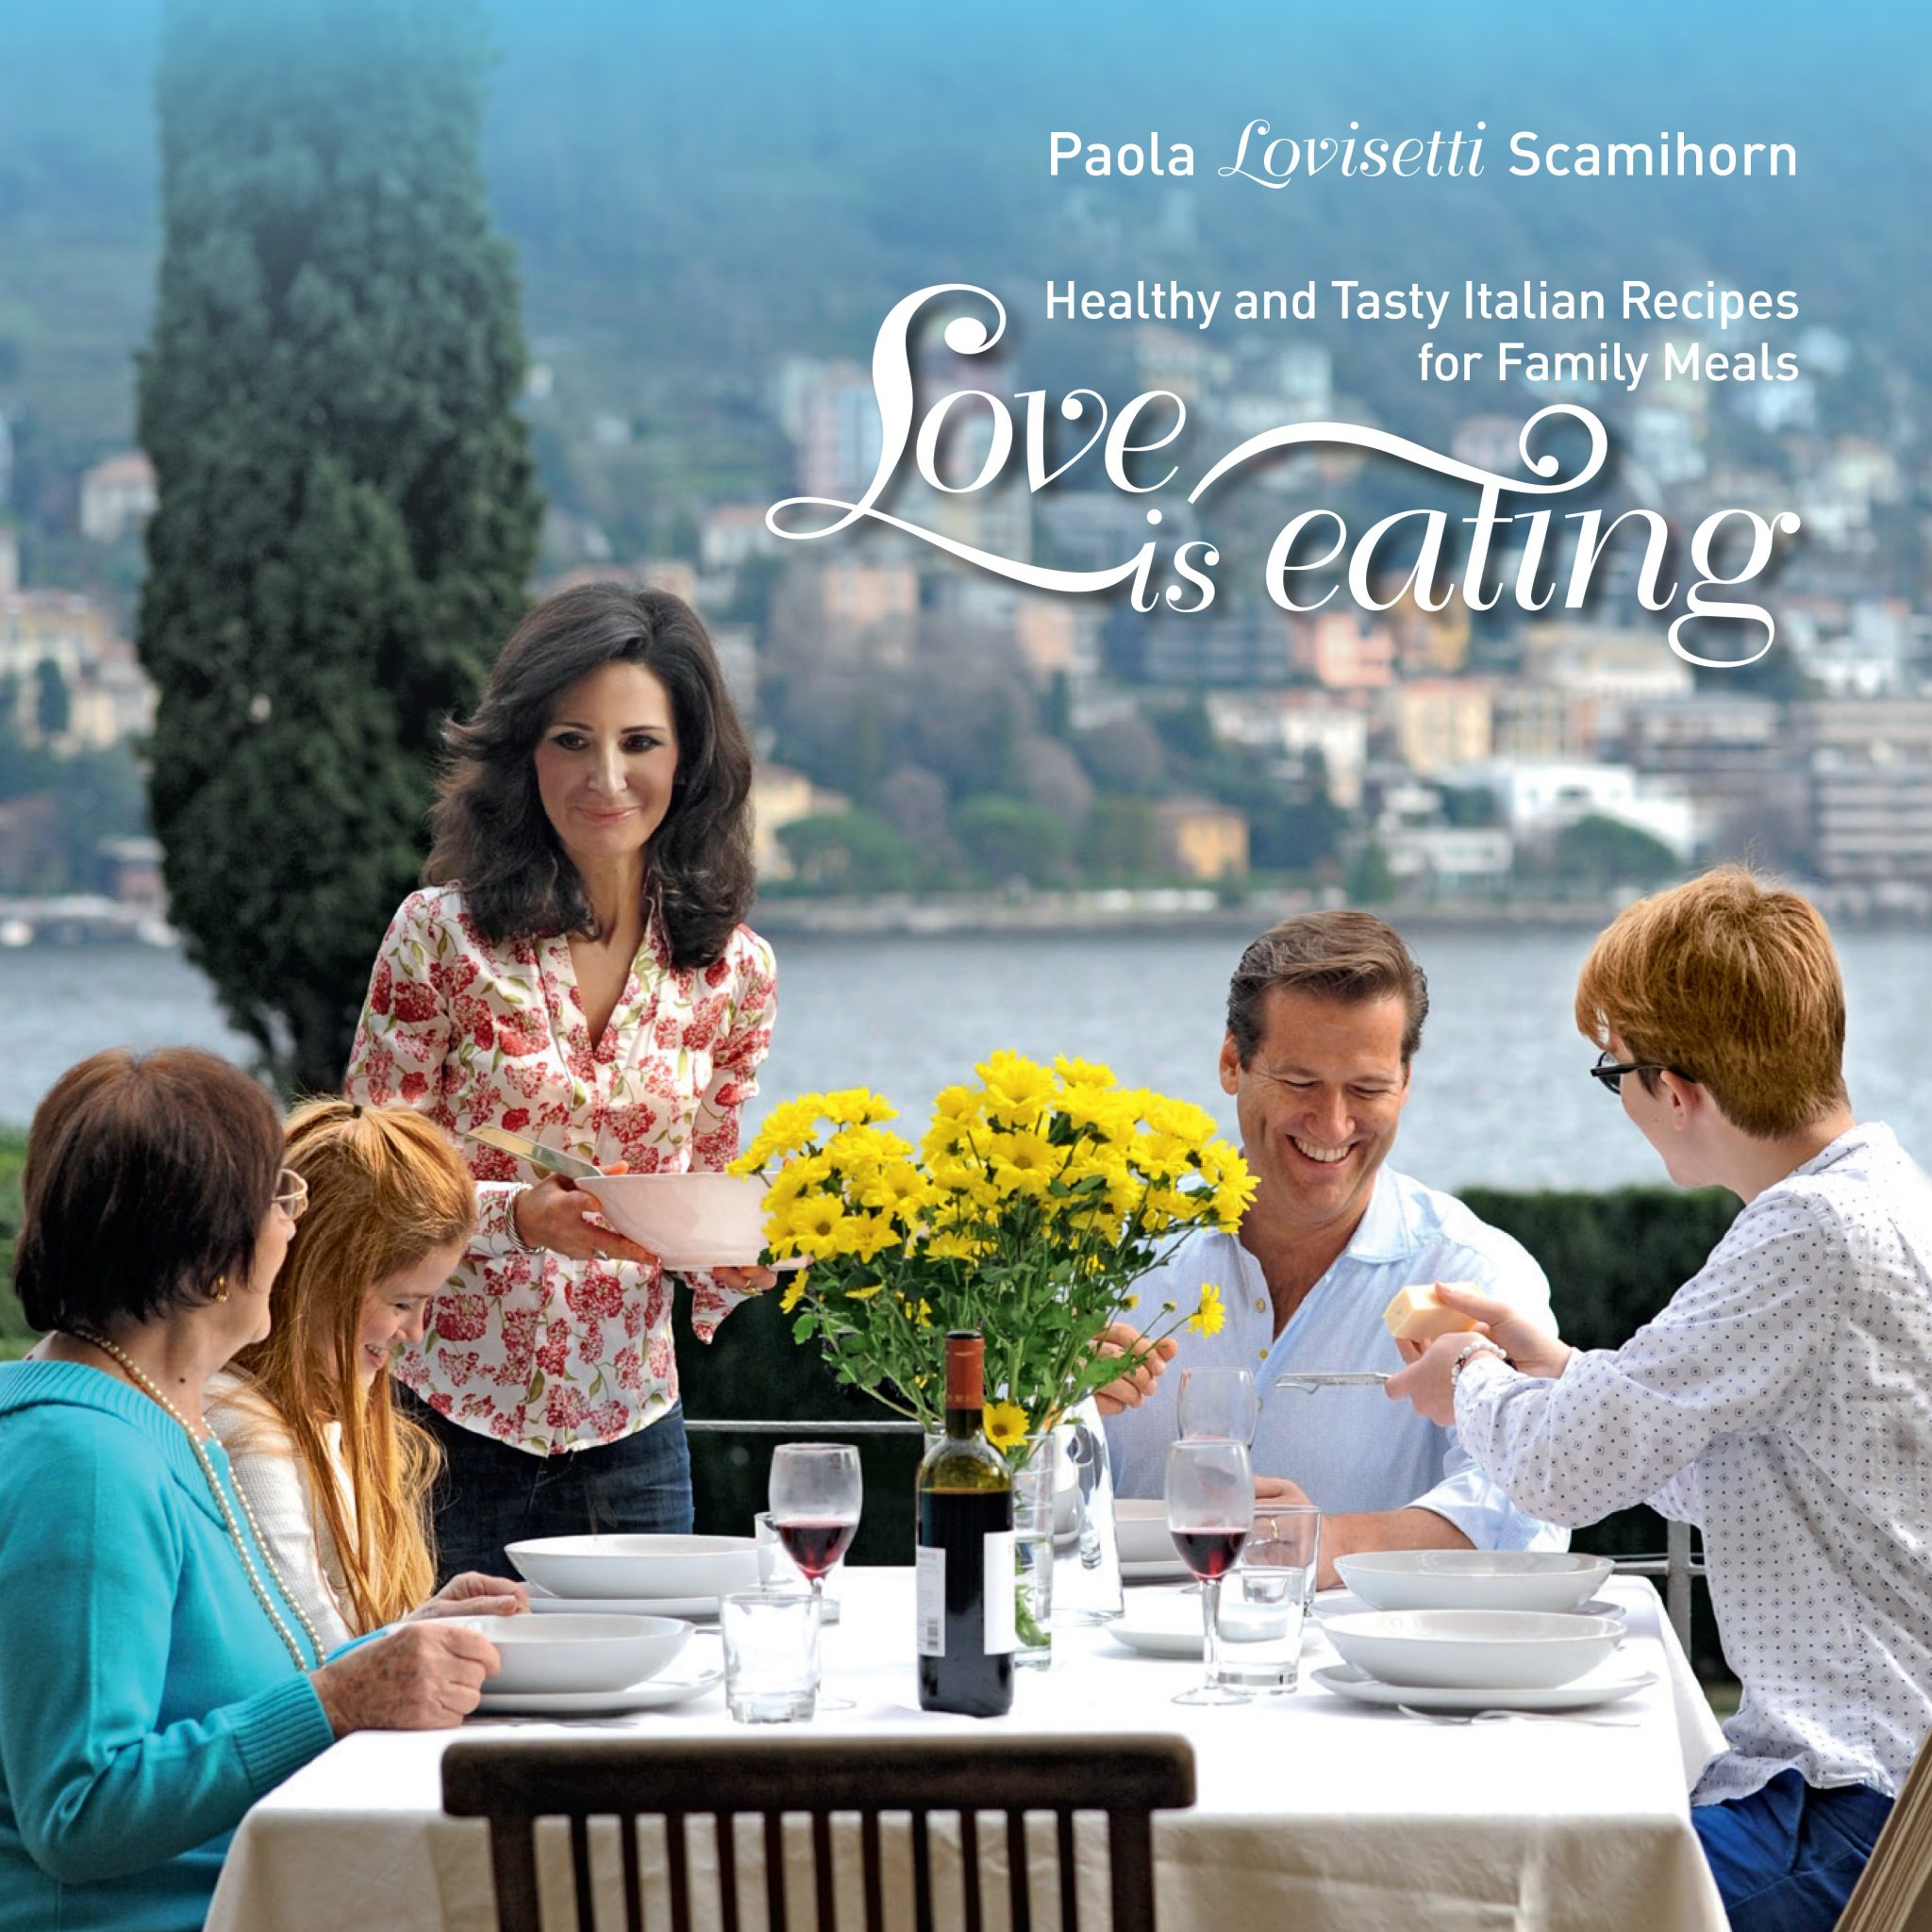 LOVE IS EATING - La cultura culinaria italiana nel mondo